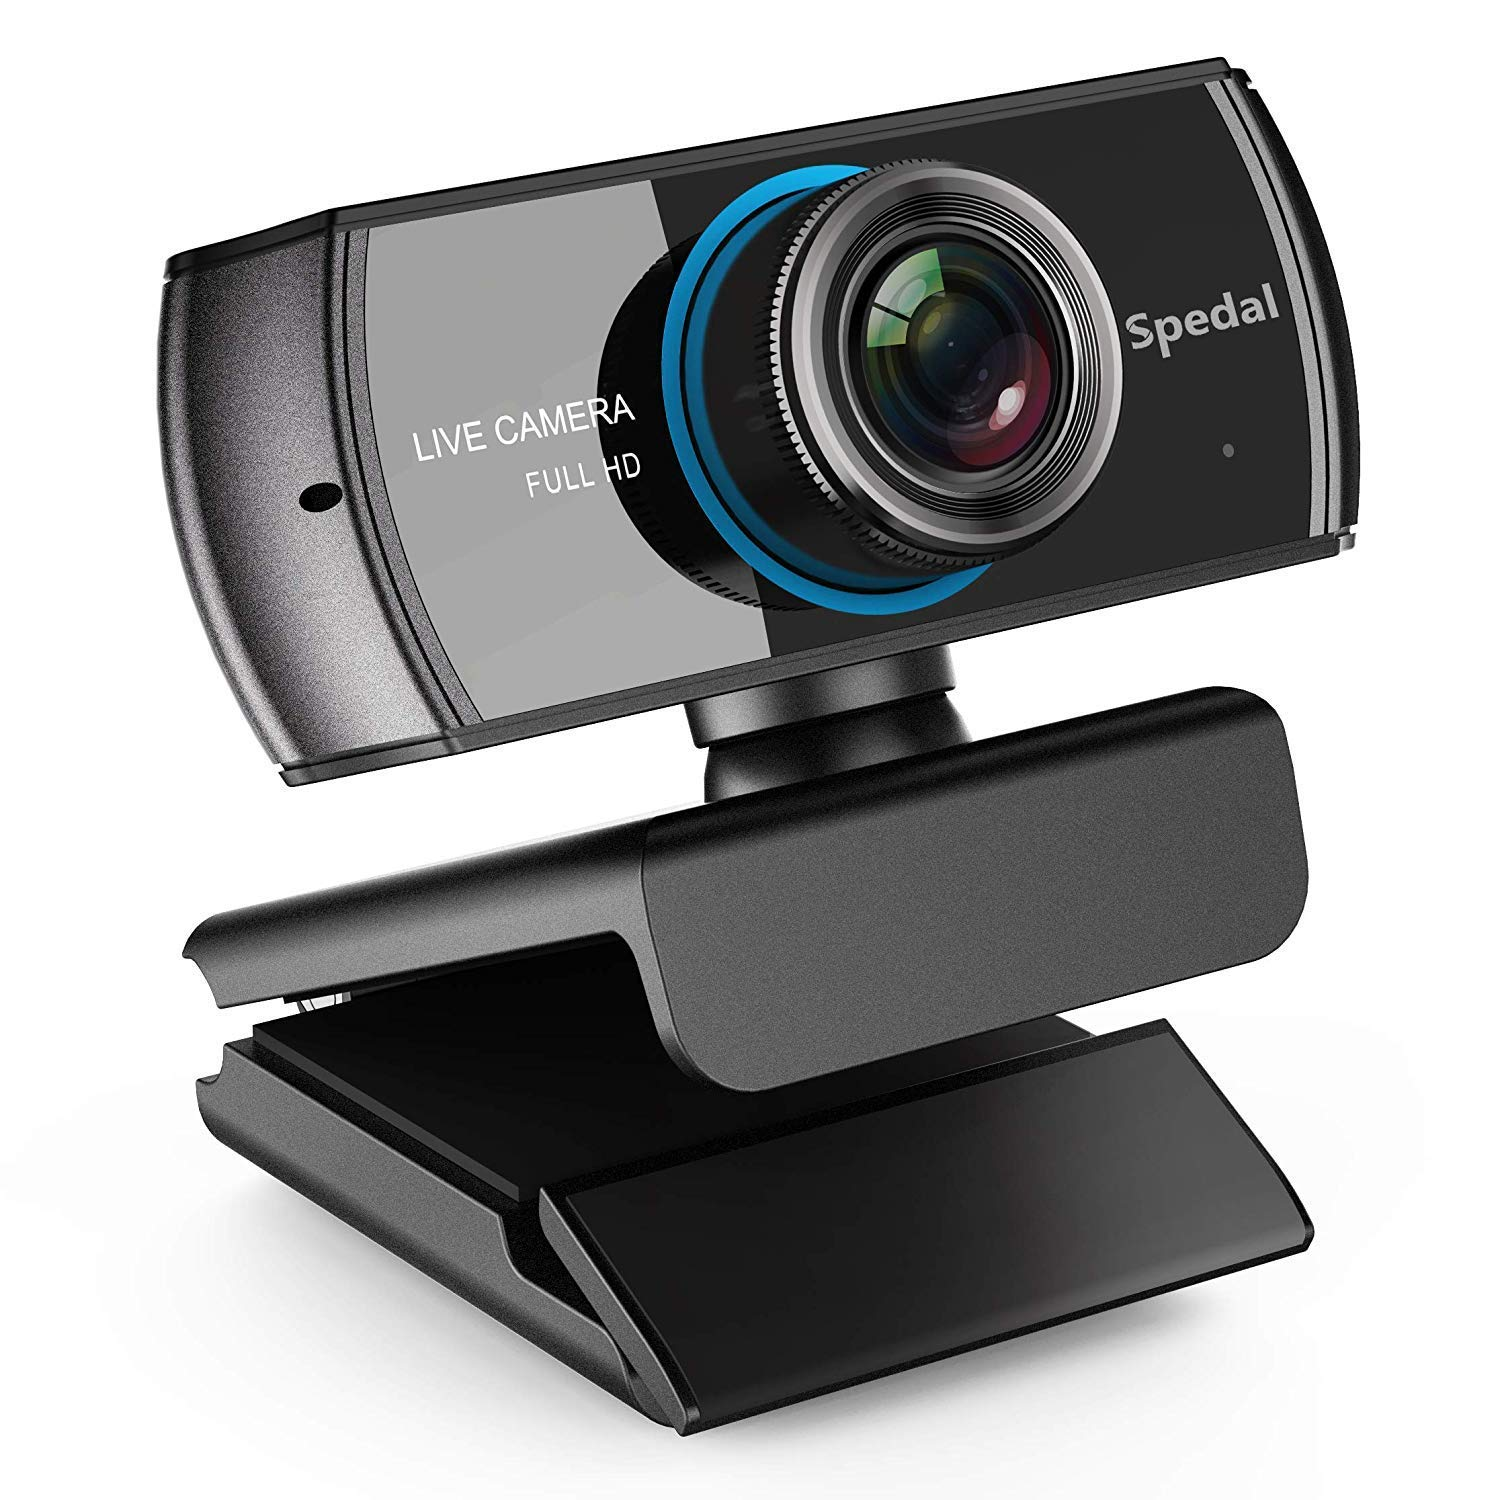 Spedal Full HD Webcam 1536p, Beauty Live Streaming Webcam, Computer Camera for OBS Xbox XSplit Skype Facebook, Compatible for Mac OS Windows 10/8/7